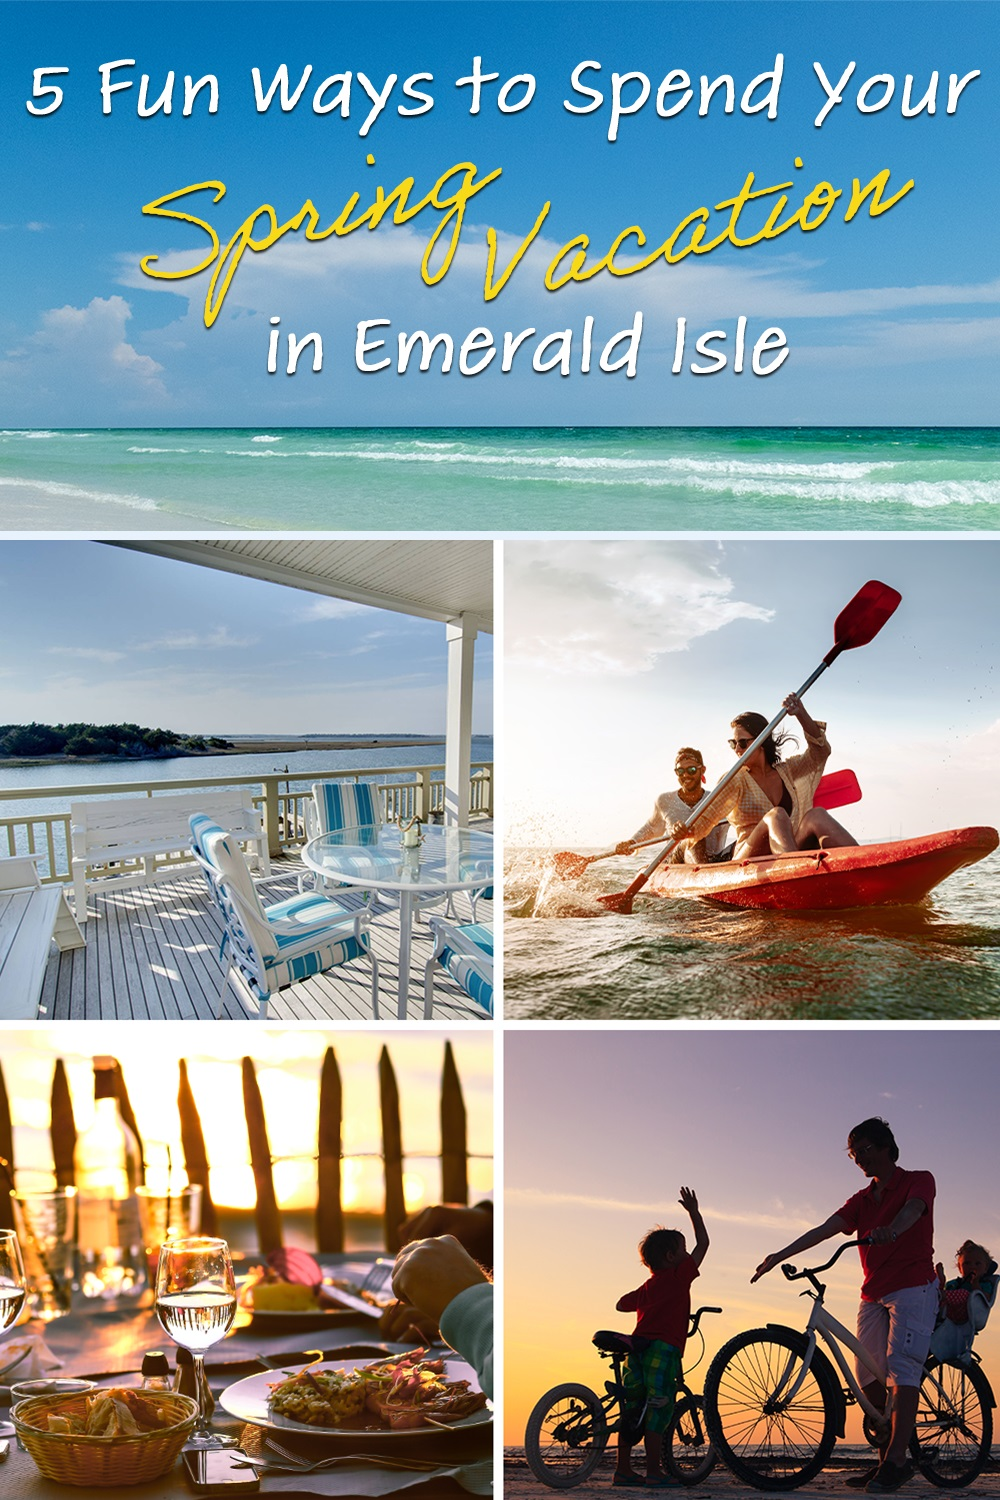 5 Fun Ways to Spend Your Spring Vacation in Emerald Isle